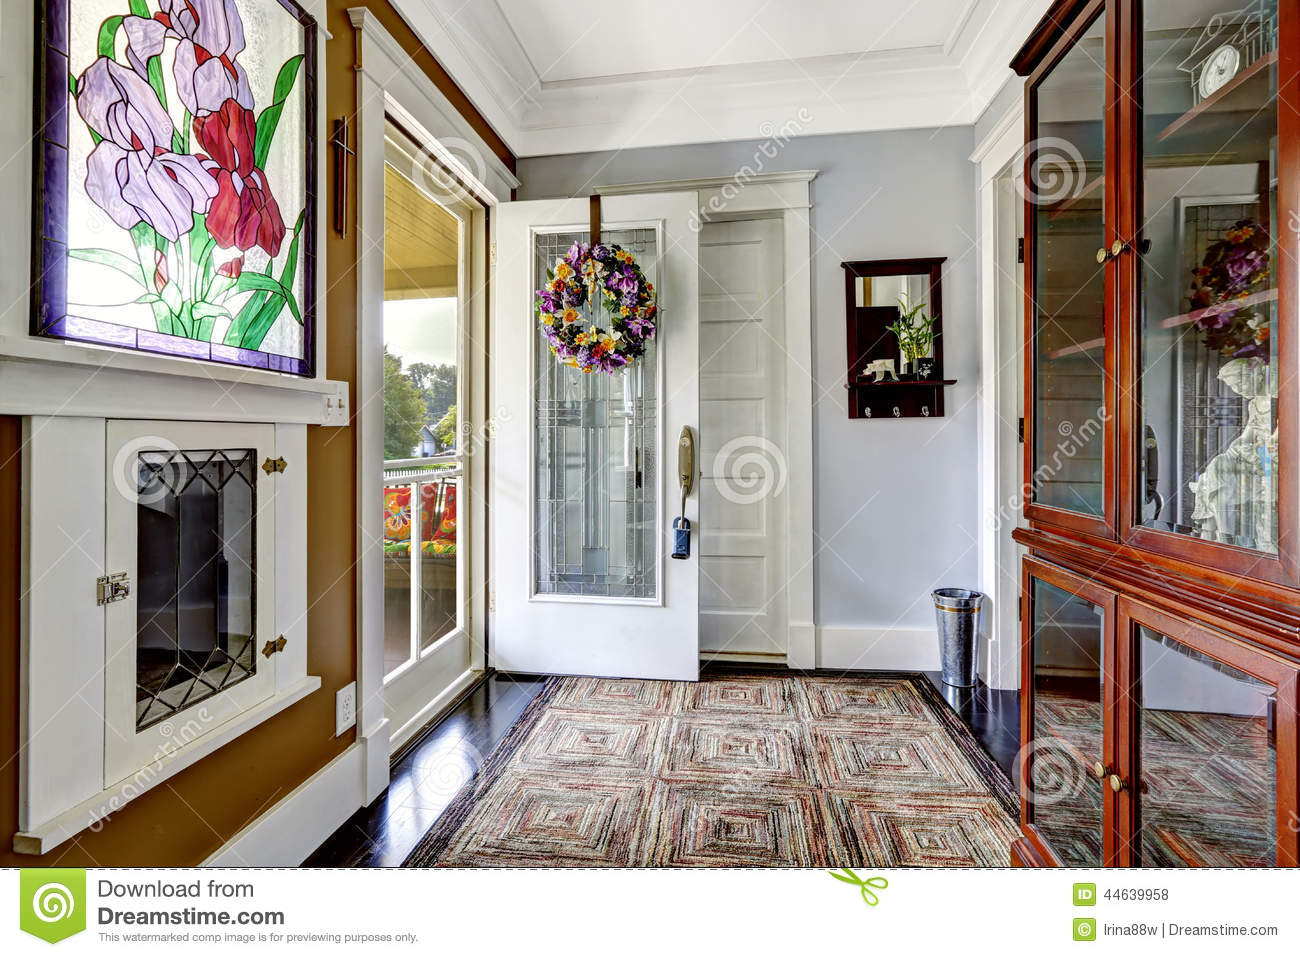 Entrance hallway interior in old american house stock - Photo de charme en couleur ...